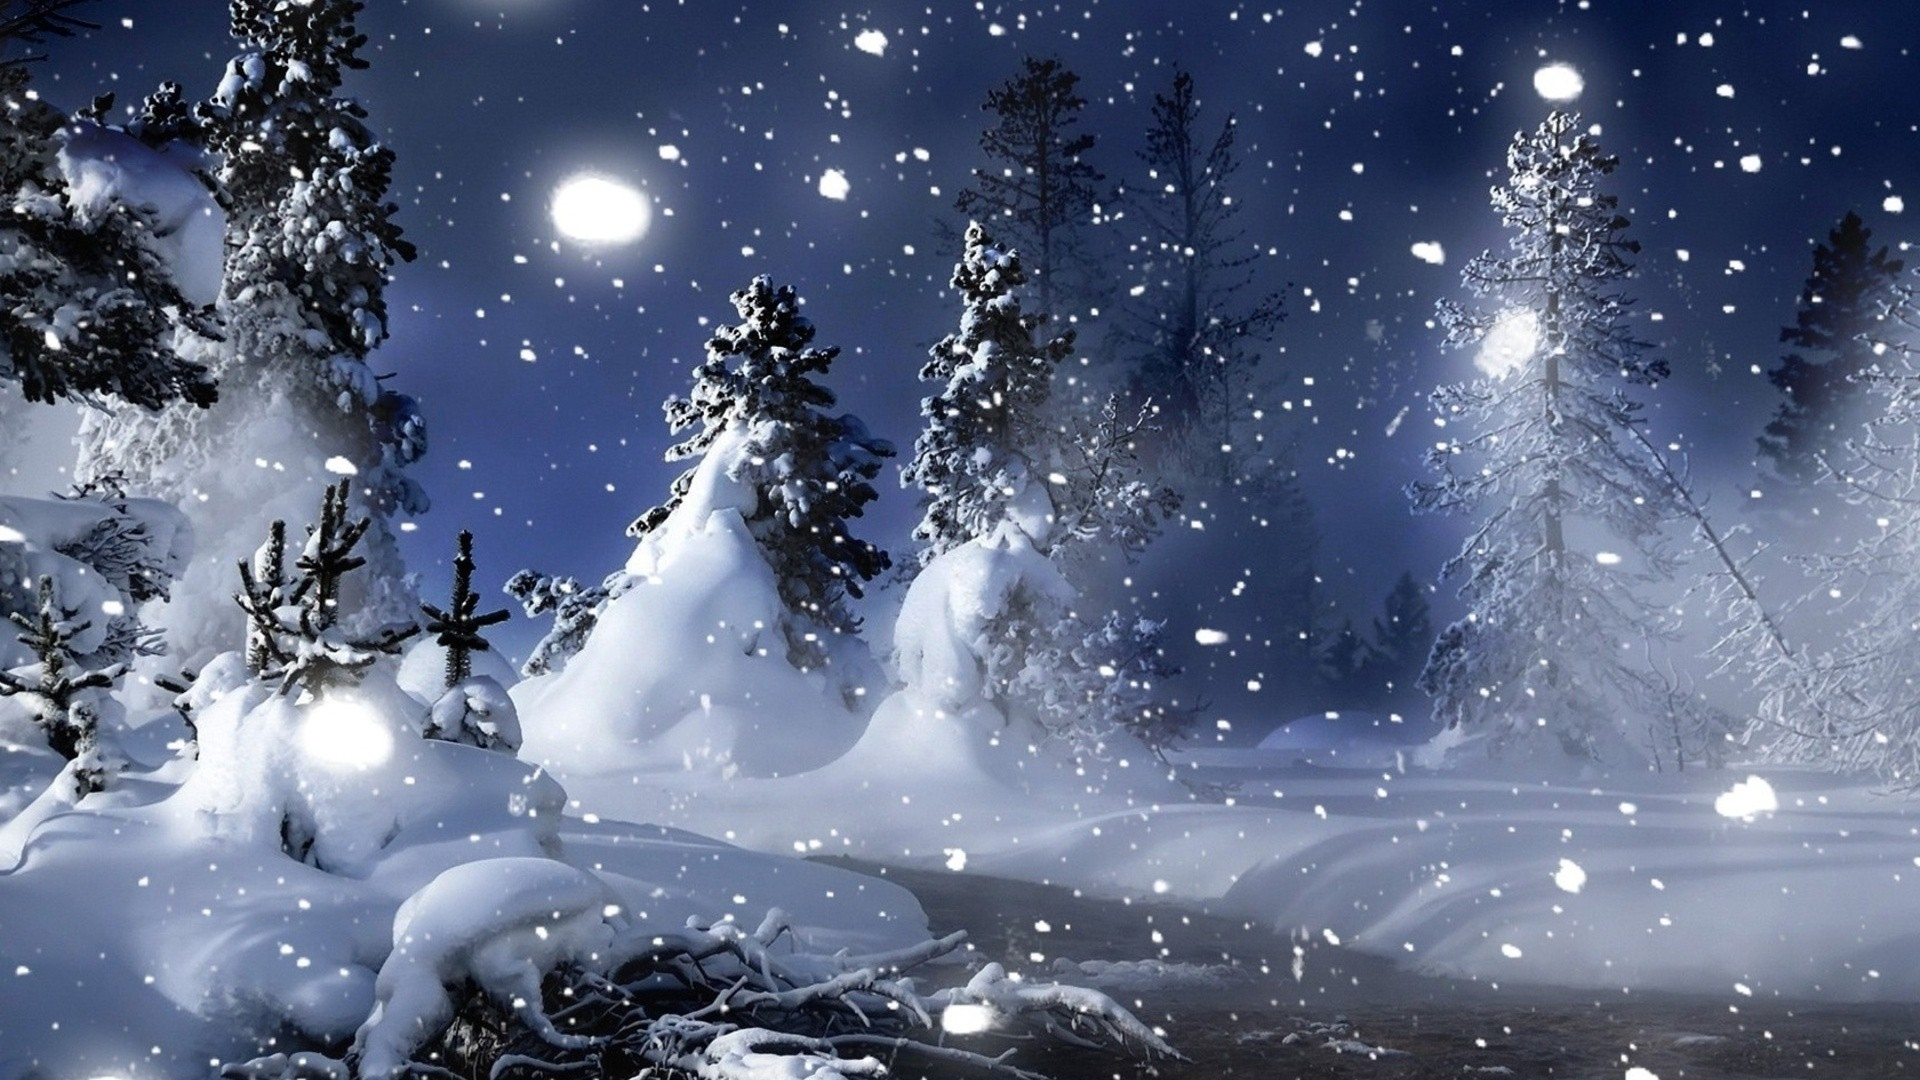 Christmas Nature Wallpaper Nature Landscapes Christmas